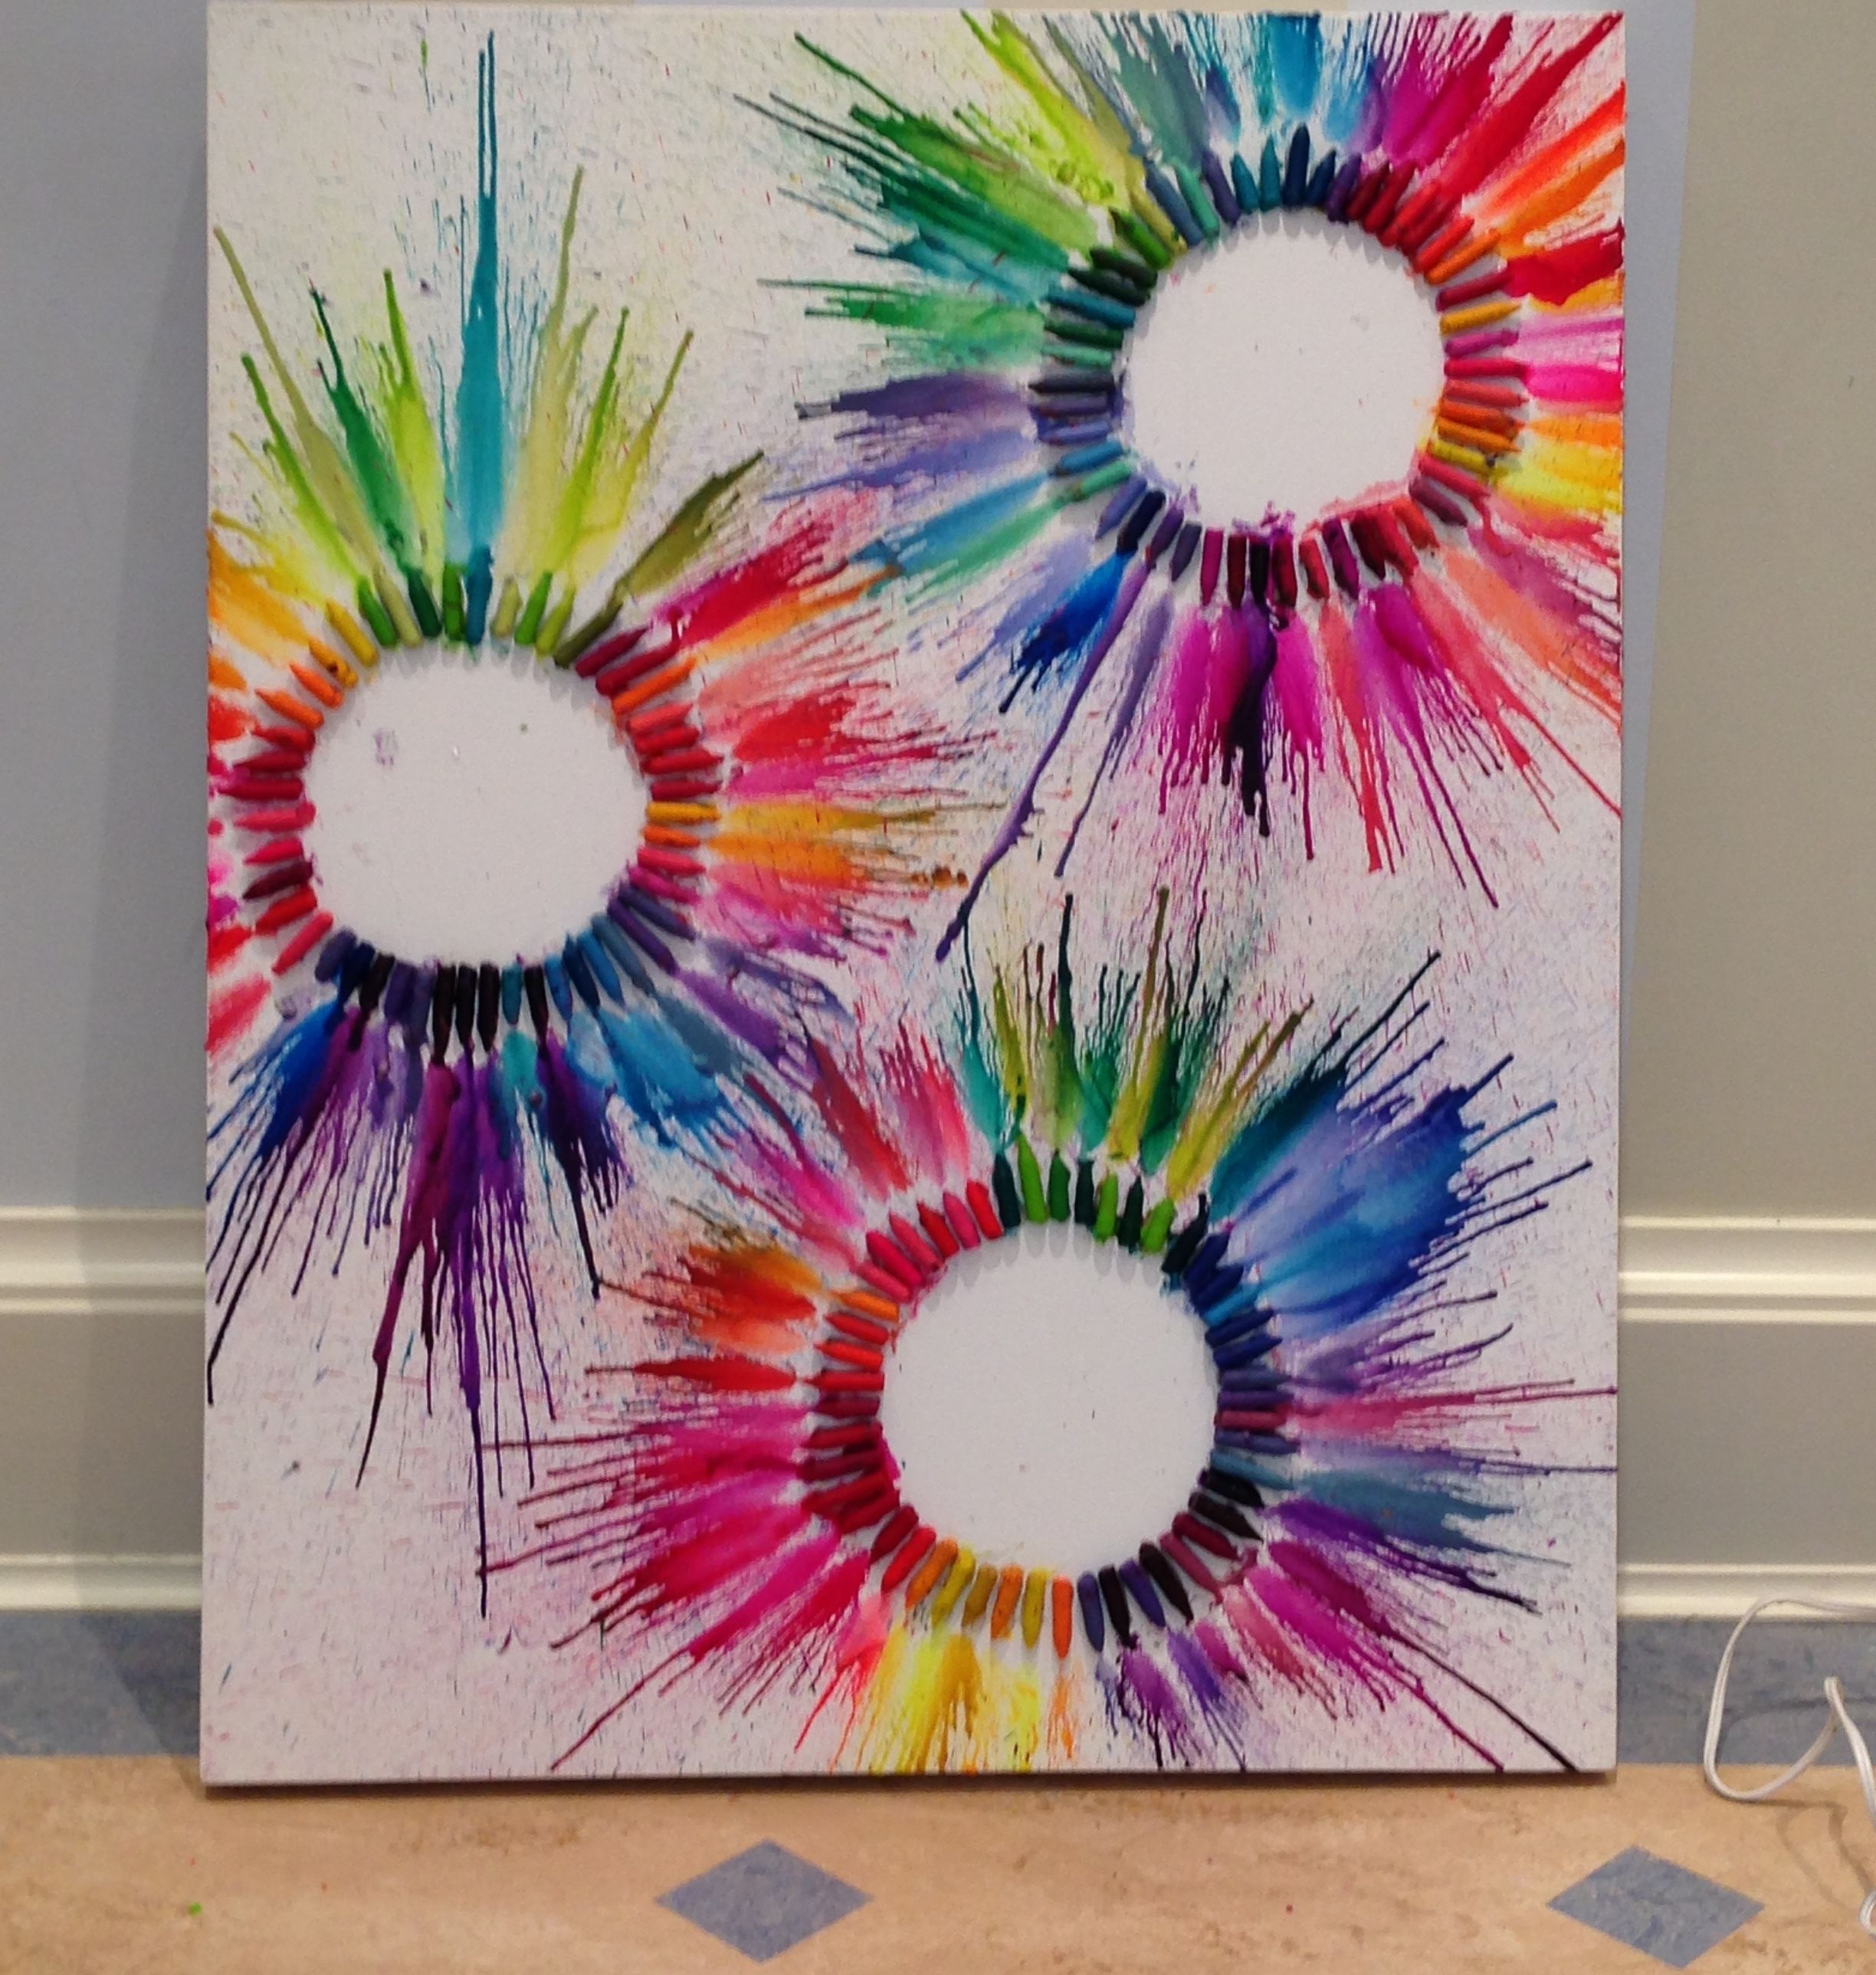 42 Very Easy Things To Paint On Canvas: Rainbow Circles Crayon Art